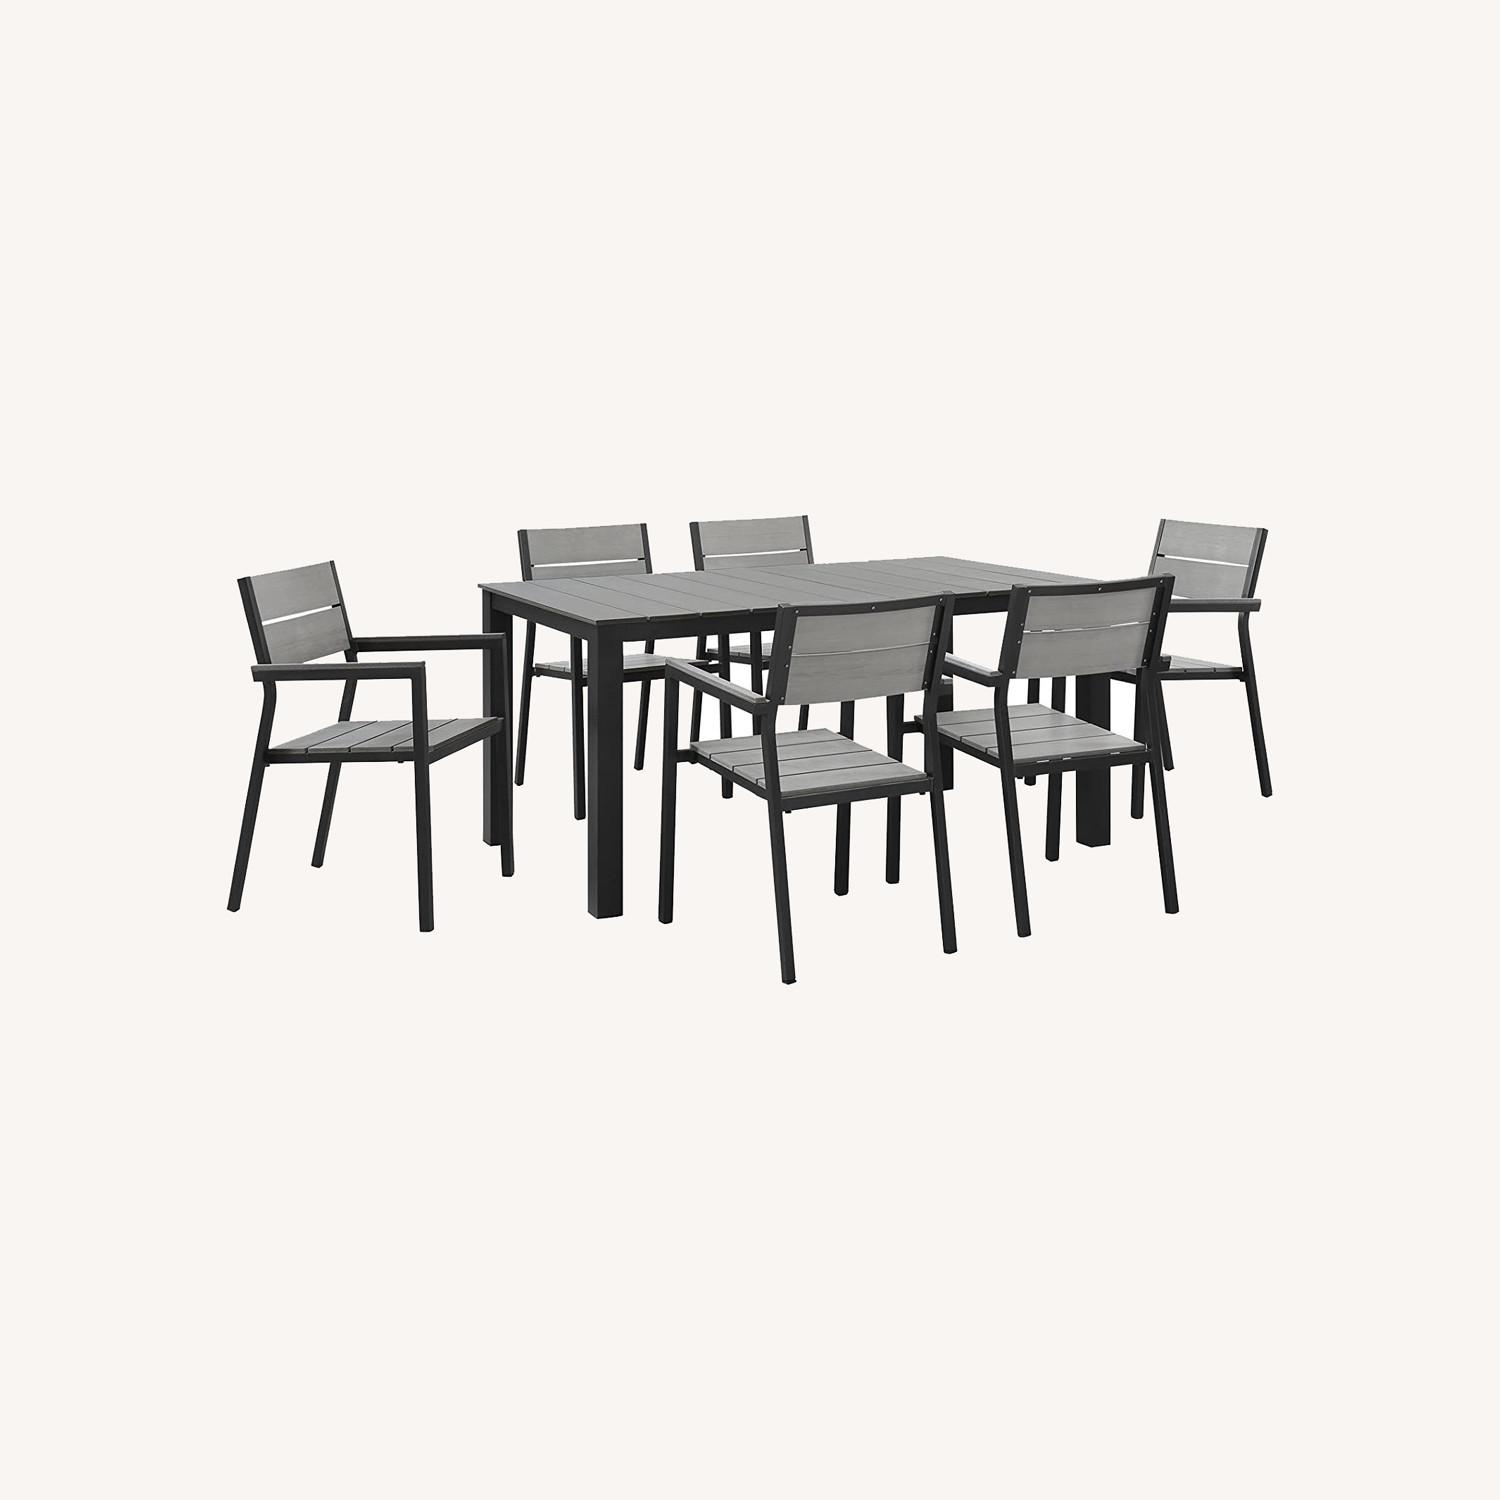 Modern 7-Piece Dining Set In Gray Frame Finish - image-6